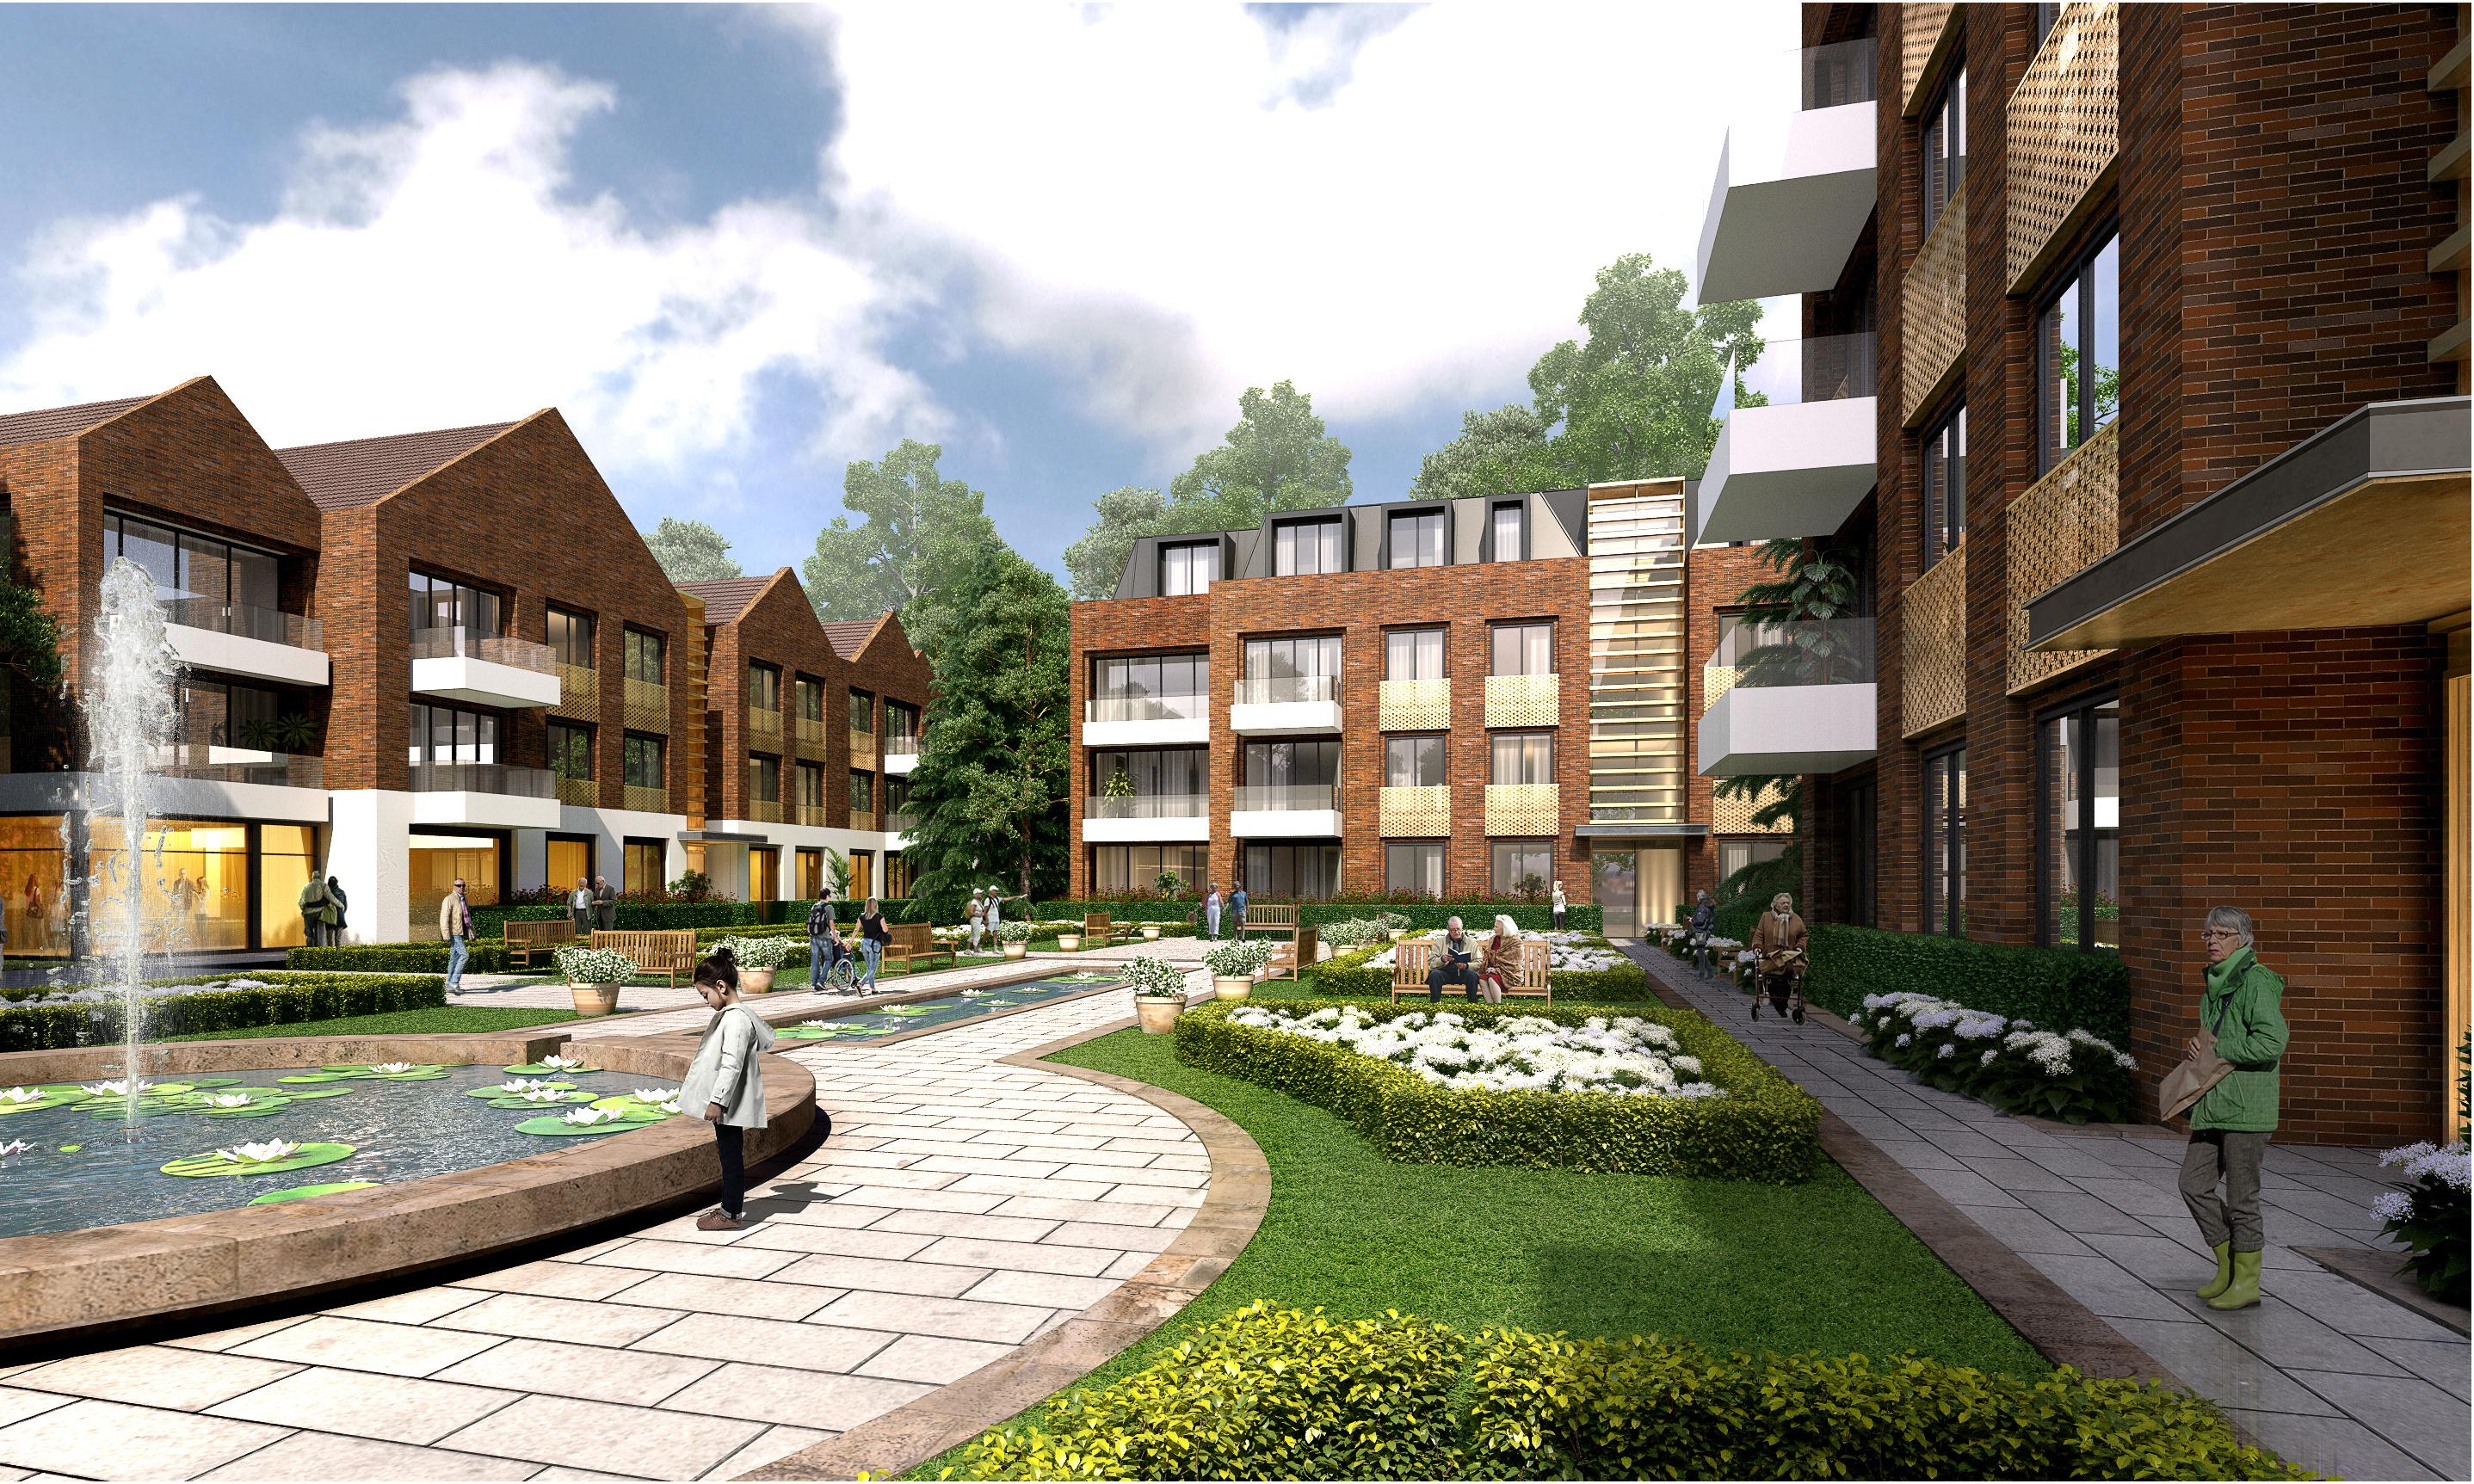 L&G's £2bn retirement homes plan could 'revive UK's high streets'